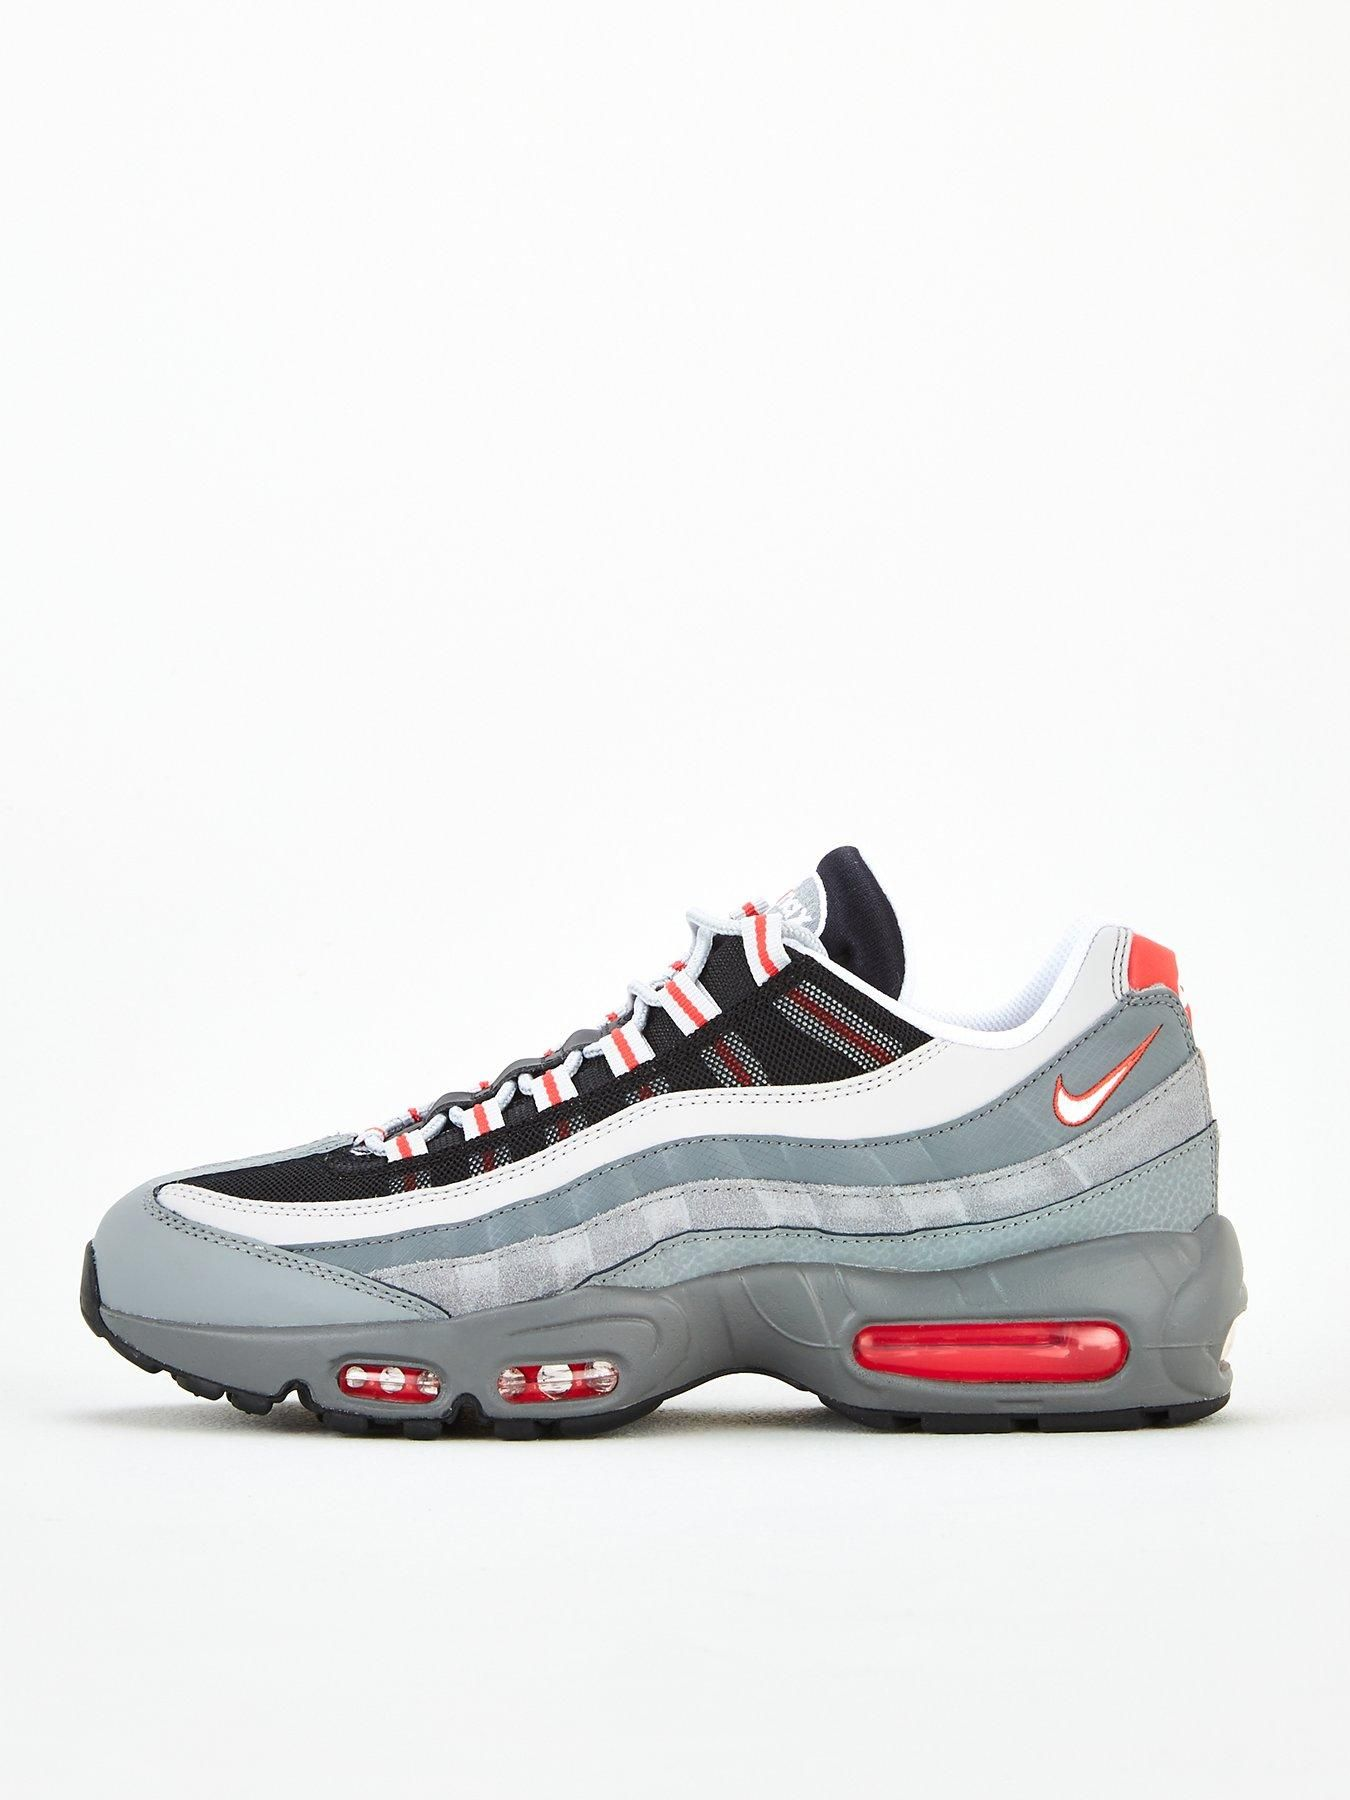 Nike Beautiful X Power Air Max 95 Trainers